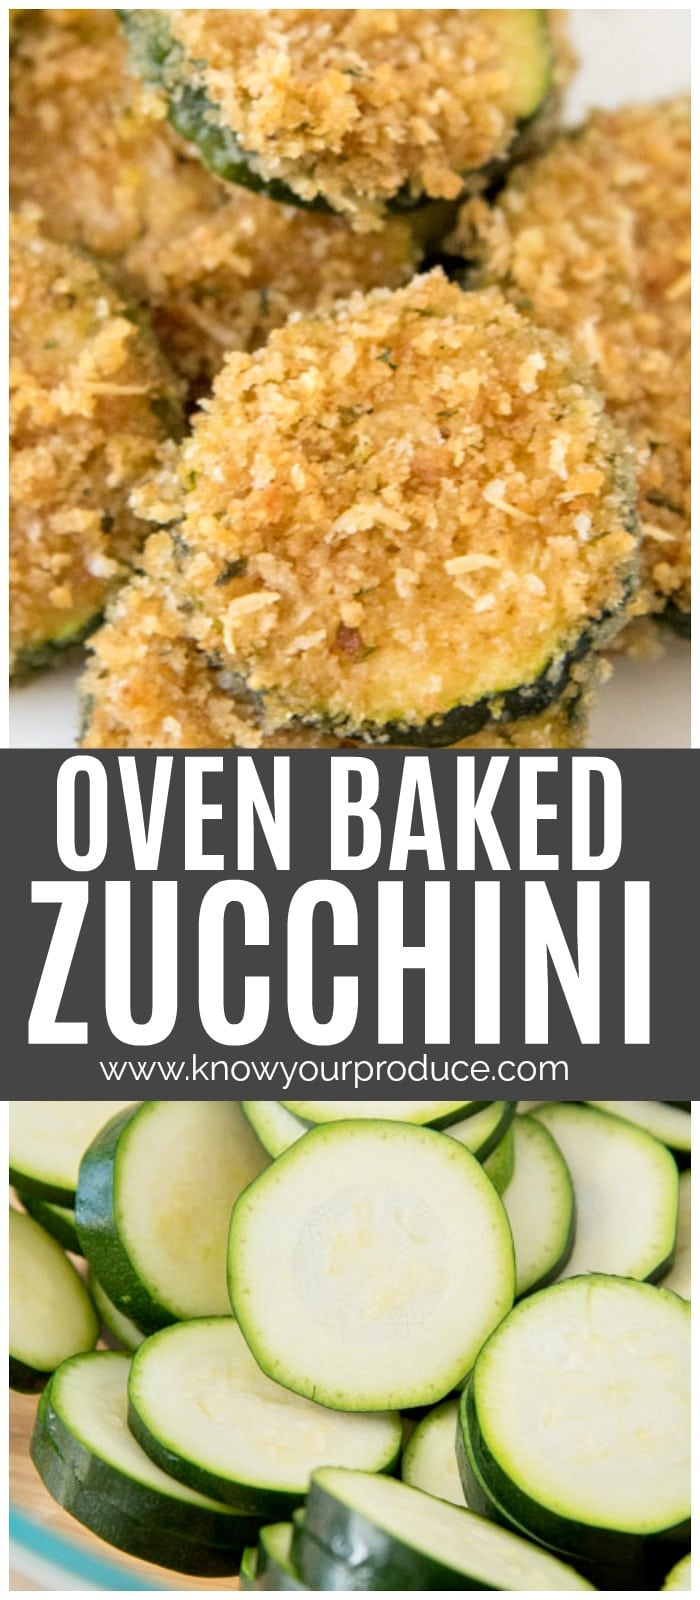 This baked zucchini is a great way to use up your zucchini squash! Make a large batch for entertaining, or a small batch as a summer side dish with dinner.